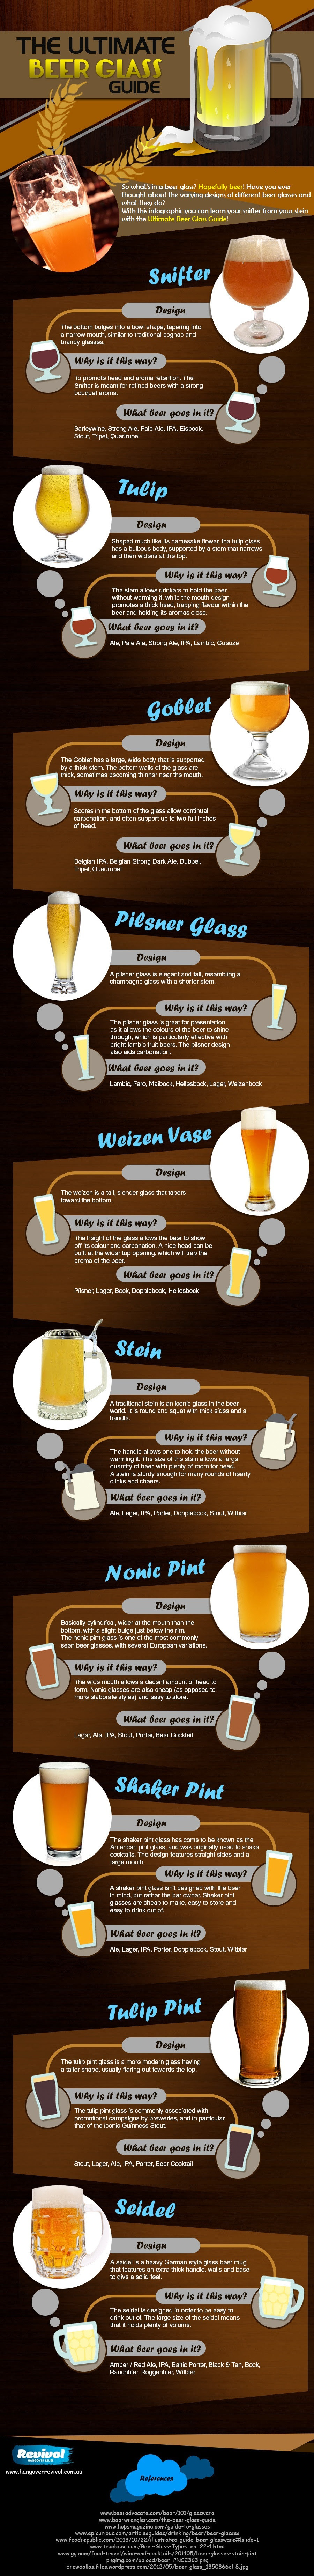 Infographic: The Ultimate Beer Glass Guide #infographic